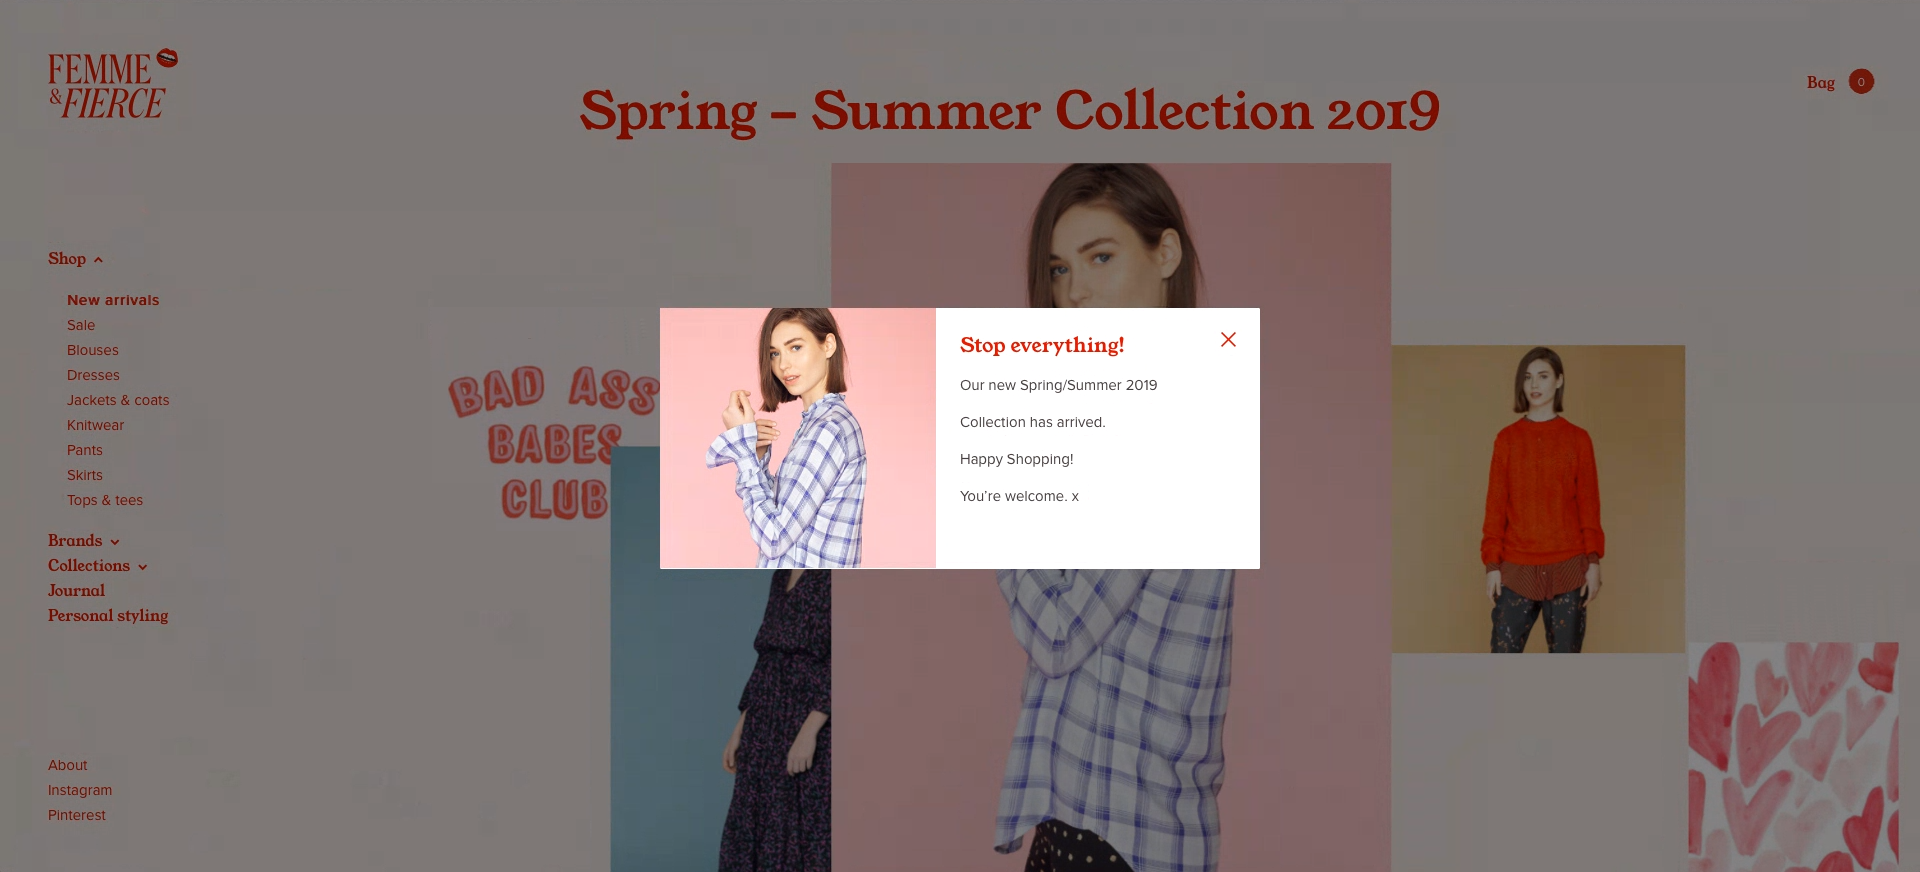 A simple announcement popup displayed on WooCommerce-powered website Femme&Fierce